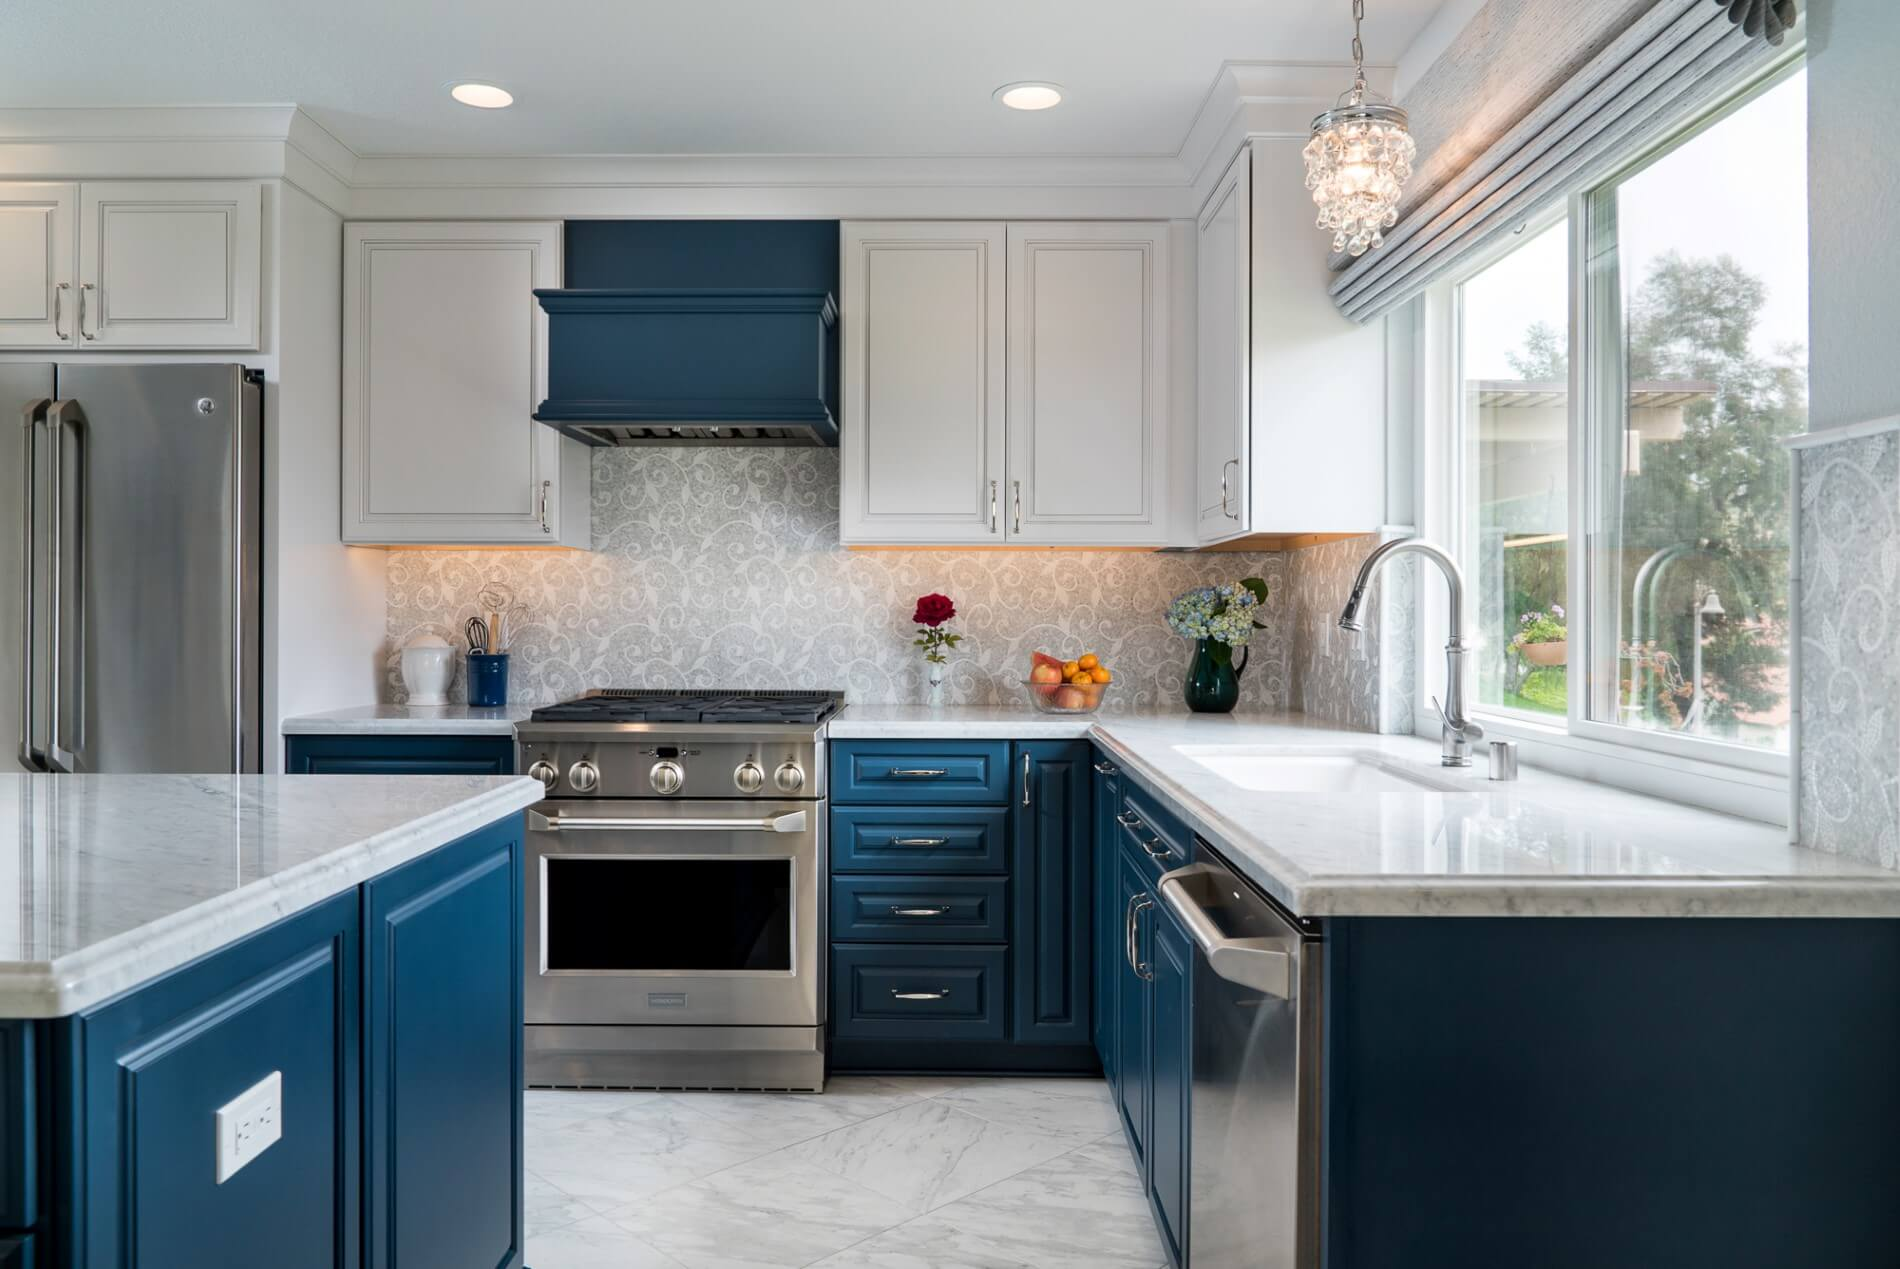 Custom Blue Cabinets in Kitchen, Blue Orange County Kitchen, Blue and White Luxury Kitchen Design